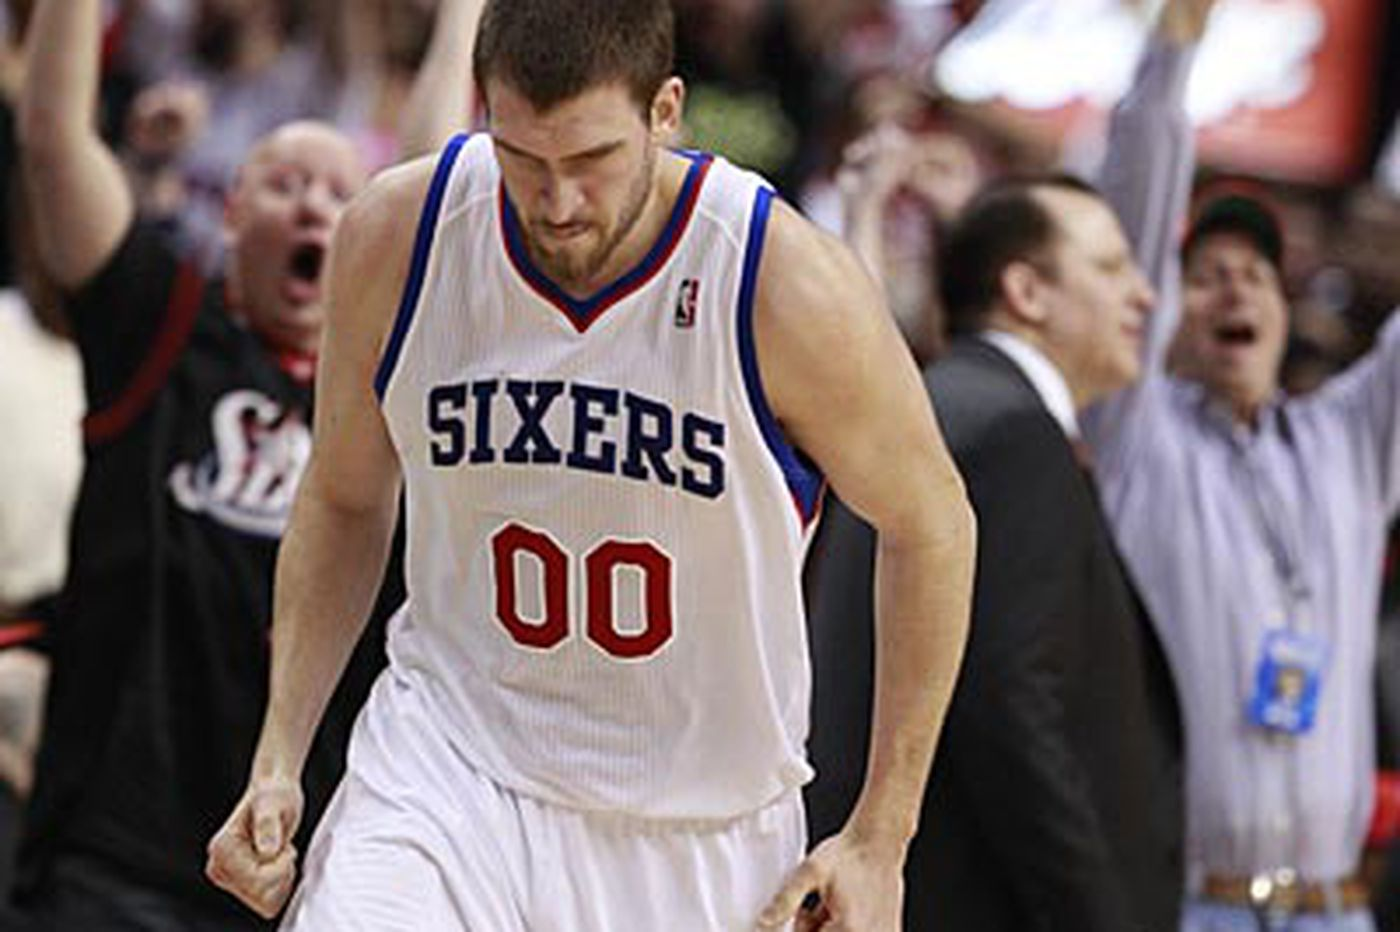 Bob Ford: Sixers' Hawes plays better than he looks